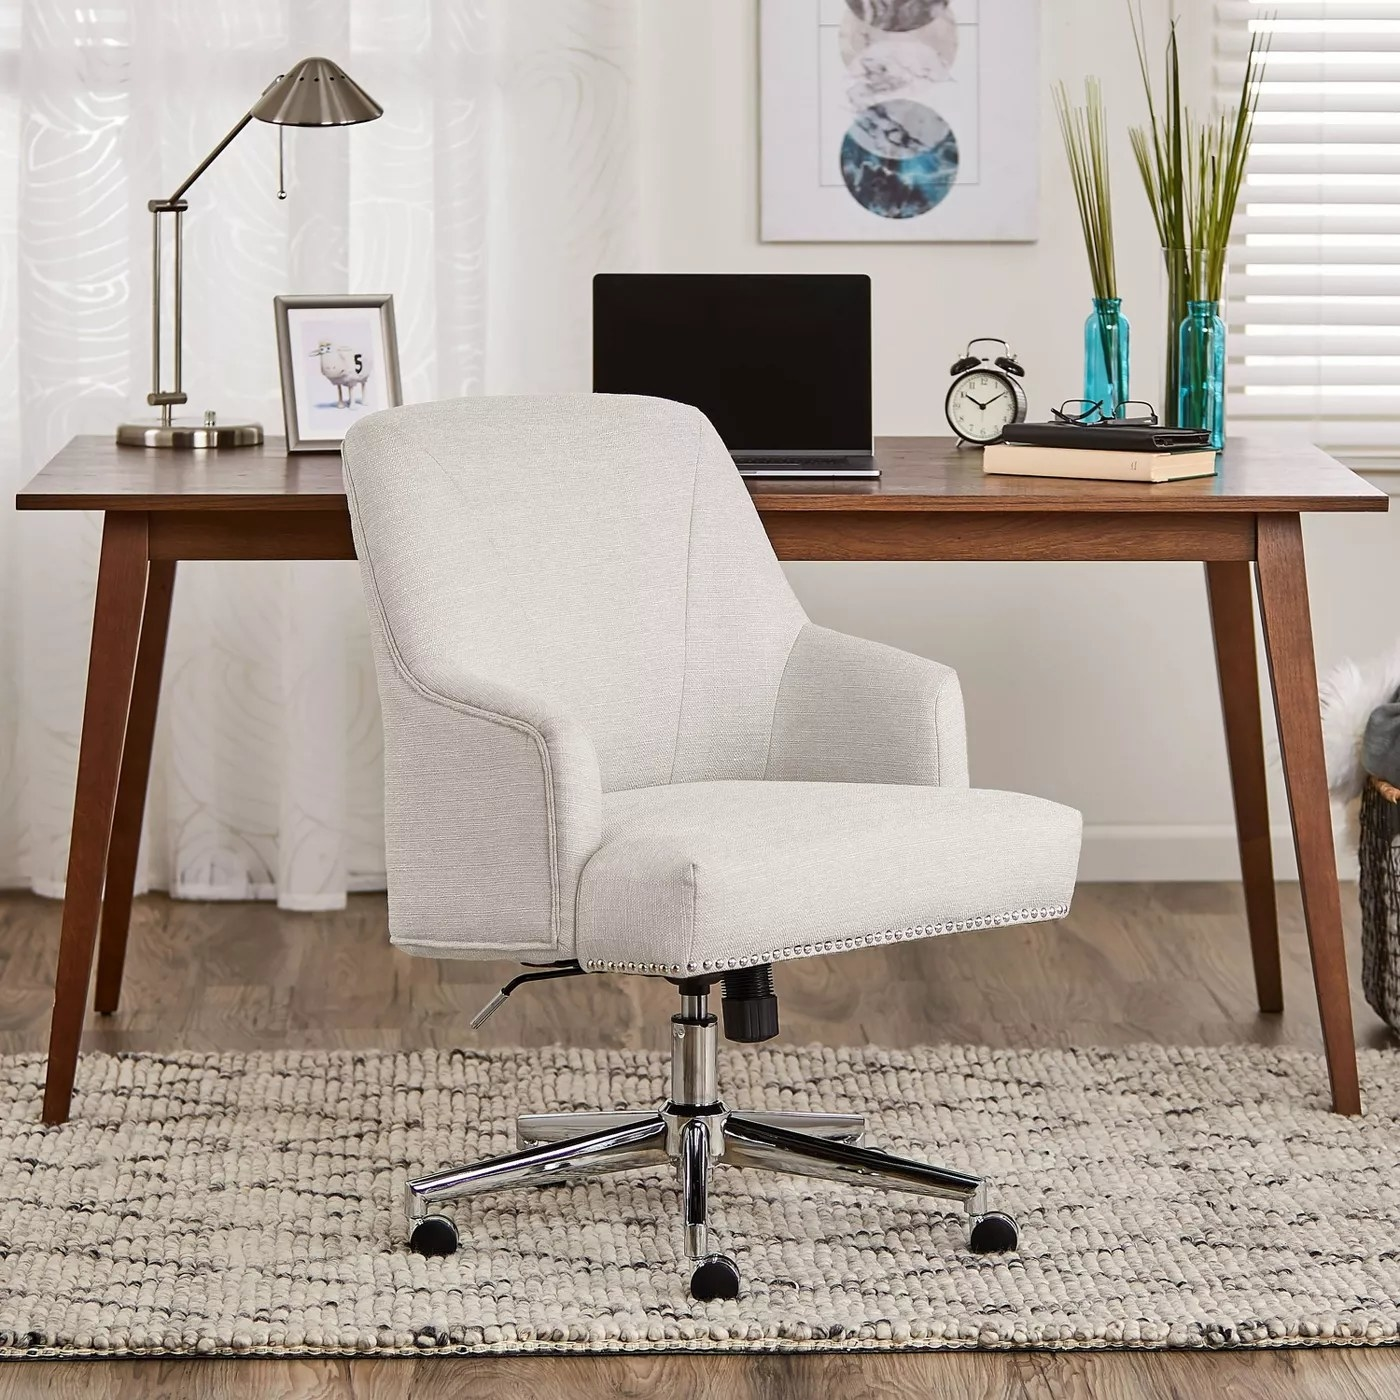 The ivory office chair with studs around the rim of the chair in a home office